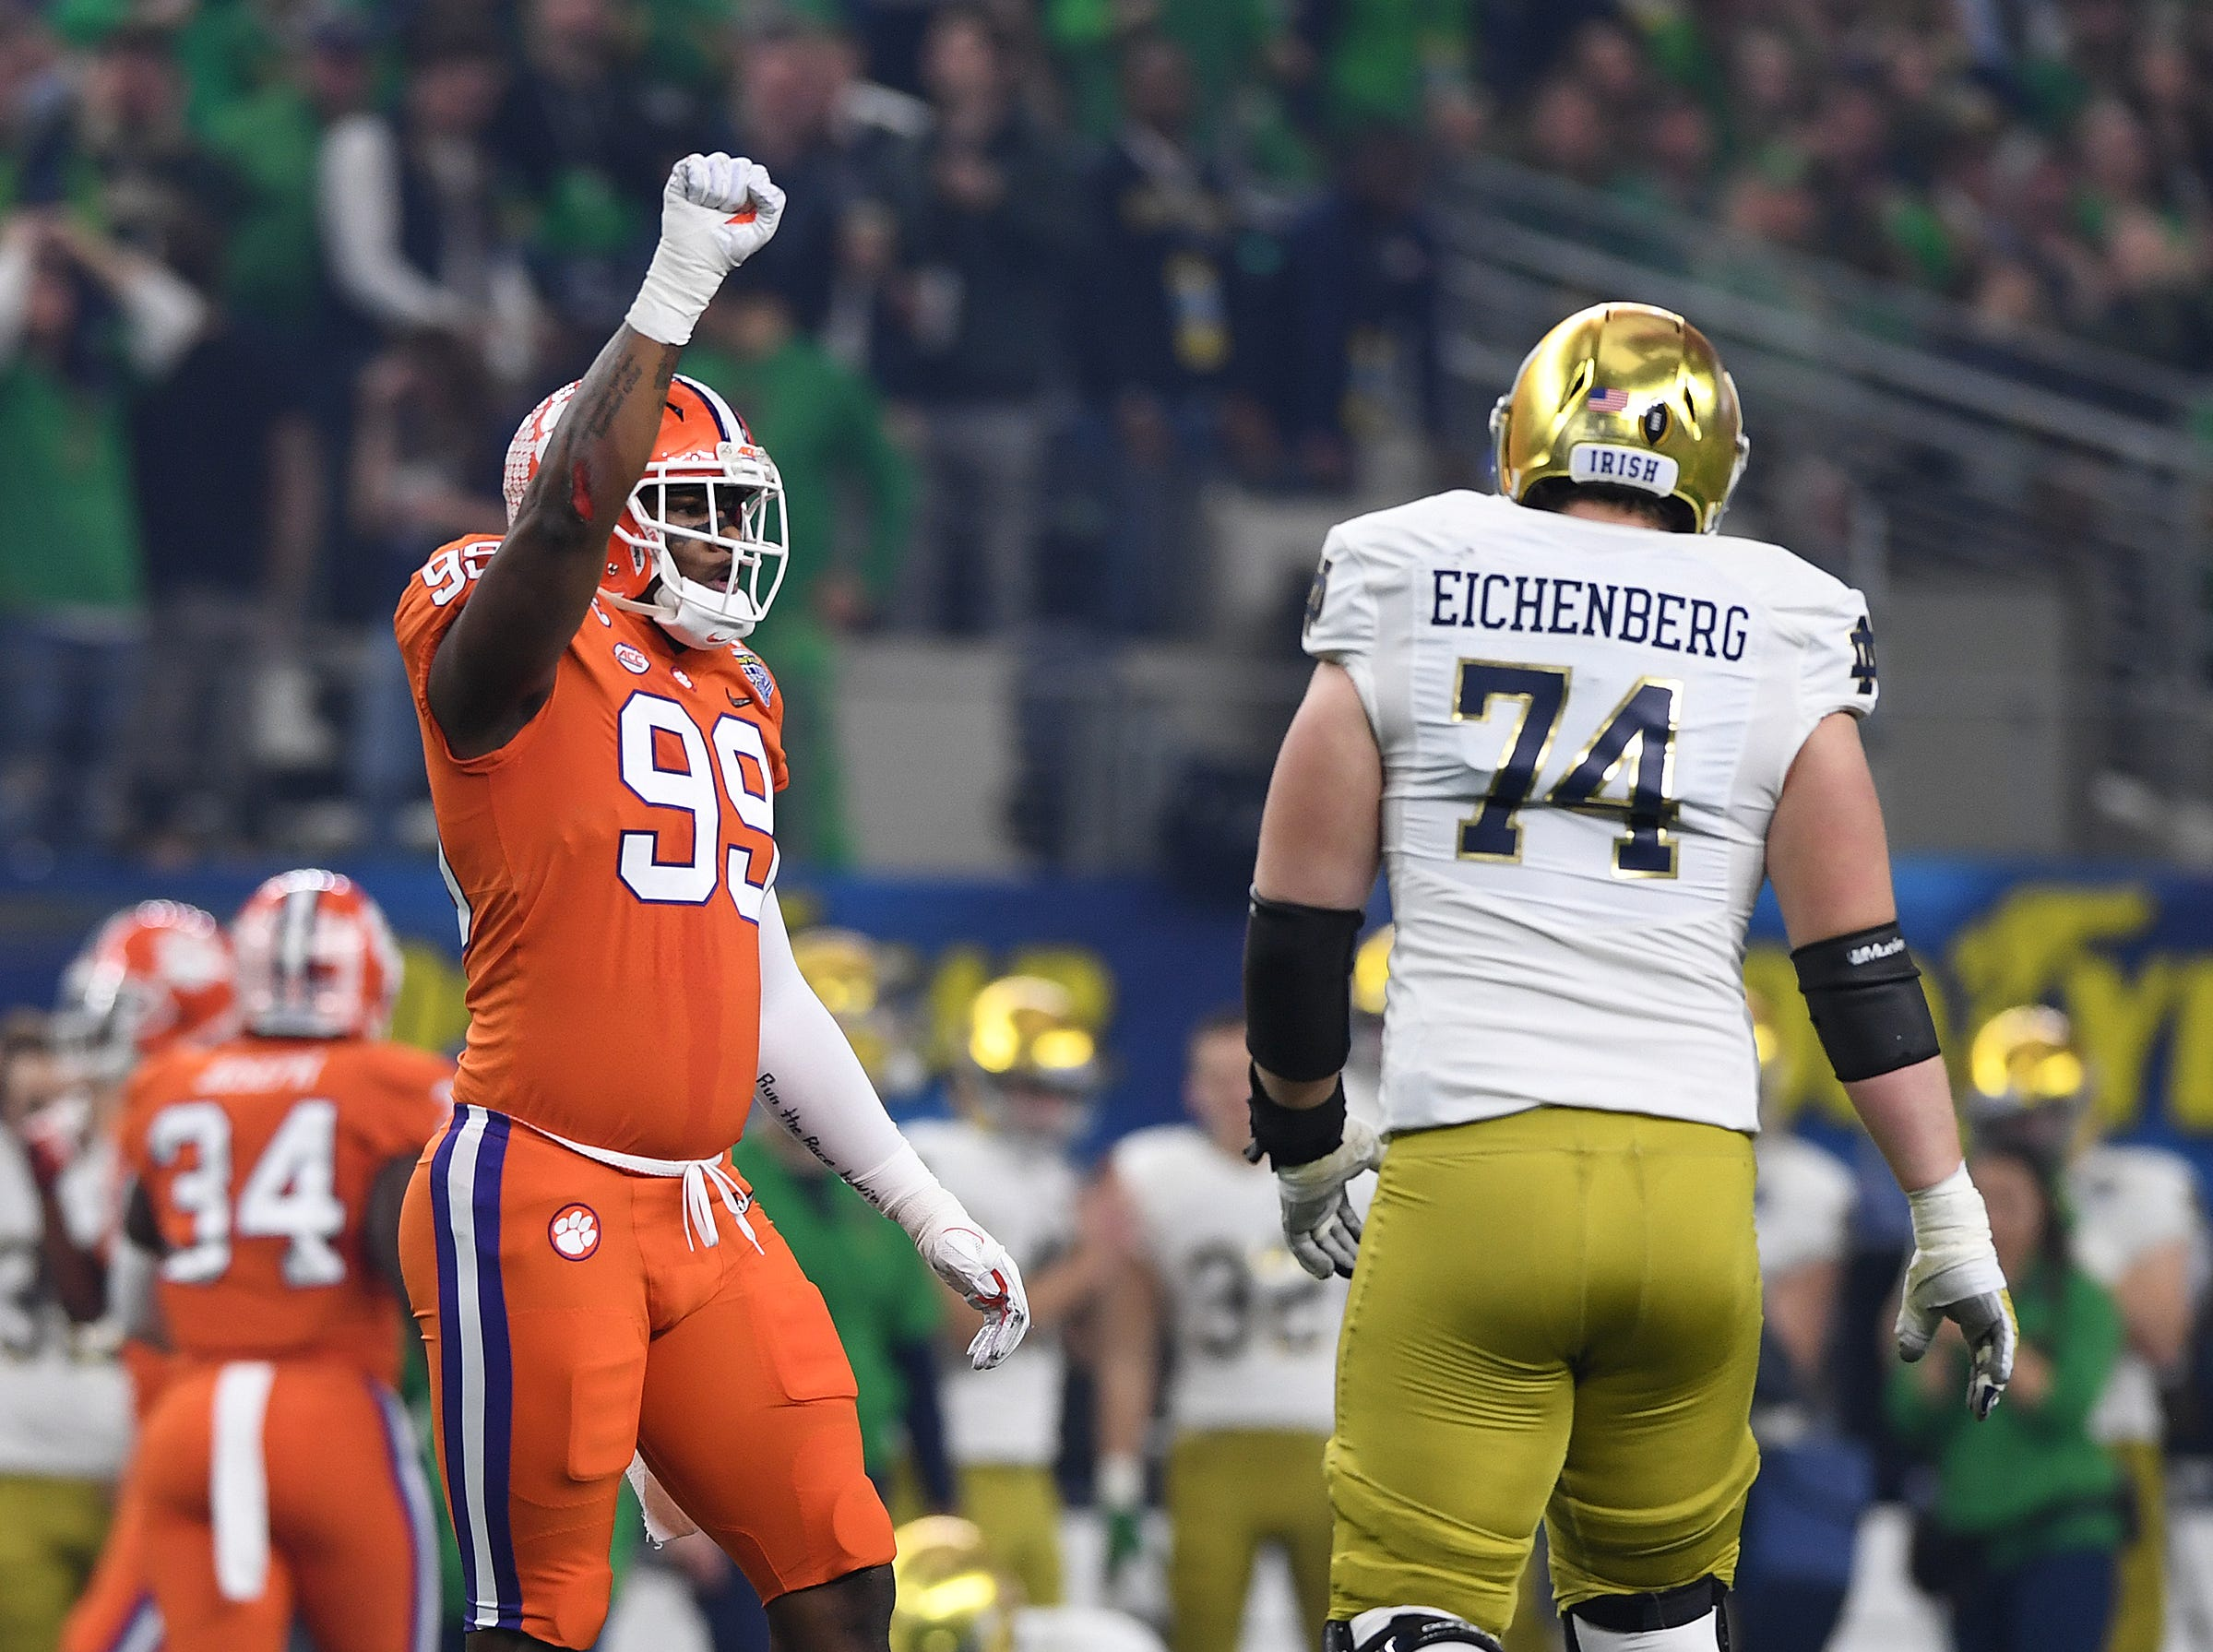 Clemson defensive lineman Clelin Ferrell (99) reacts after a defensive stop against Notre Dame during the 1st quarter of the Goodyear Cotton Bowl at AT&T stadium in Arlington, TX Saturday, December 29, 2018.